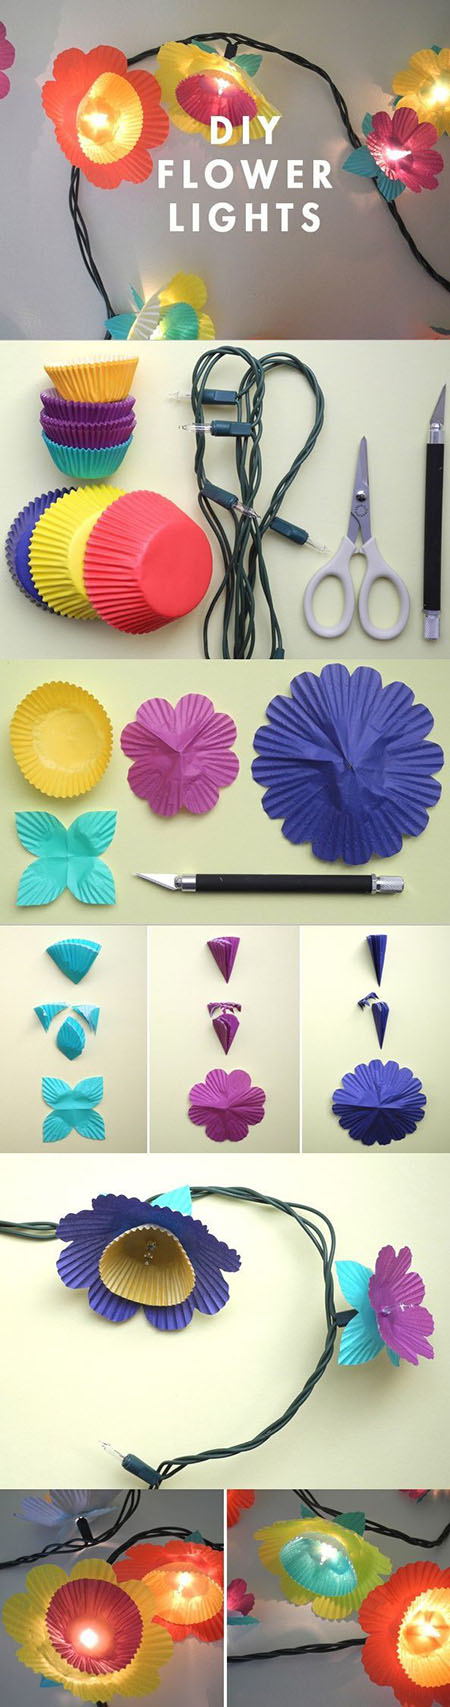 13  DIY Flower Lights71a7c64